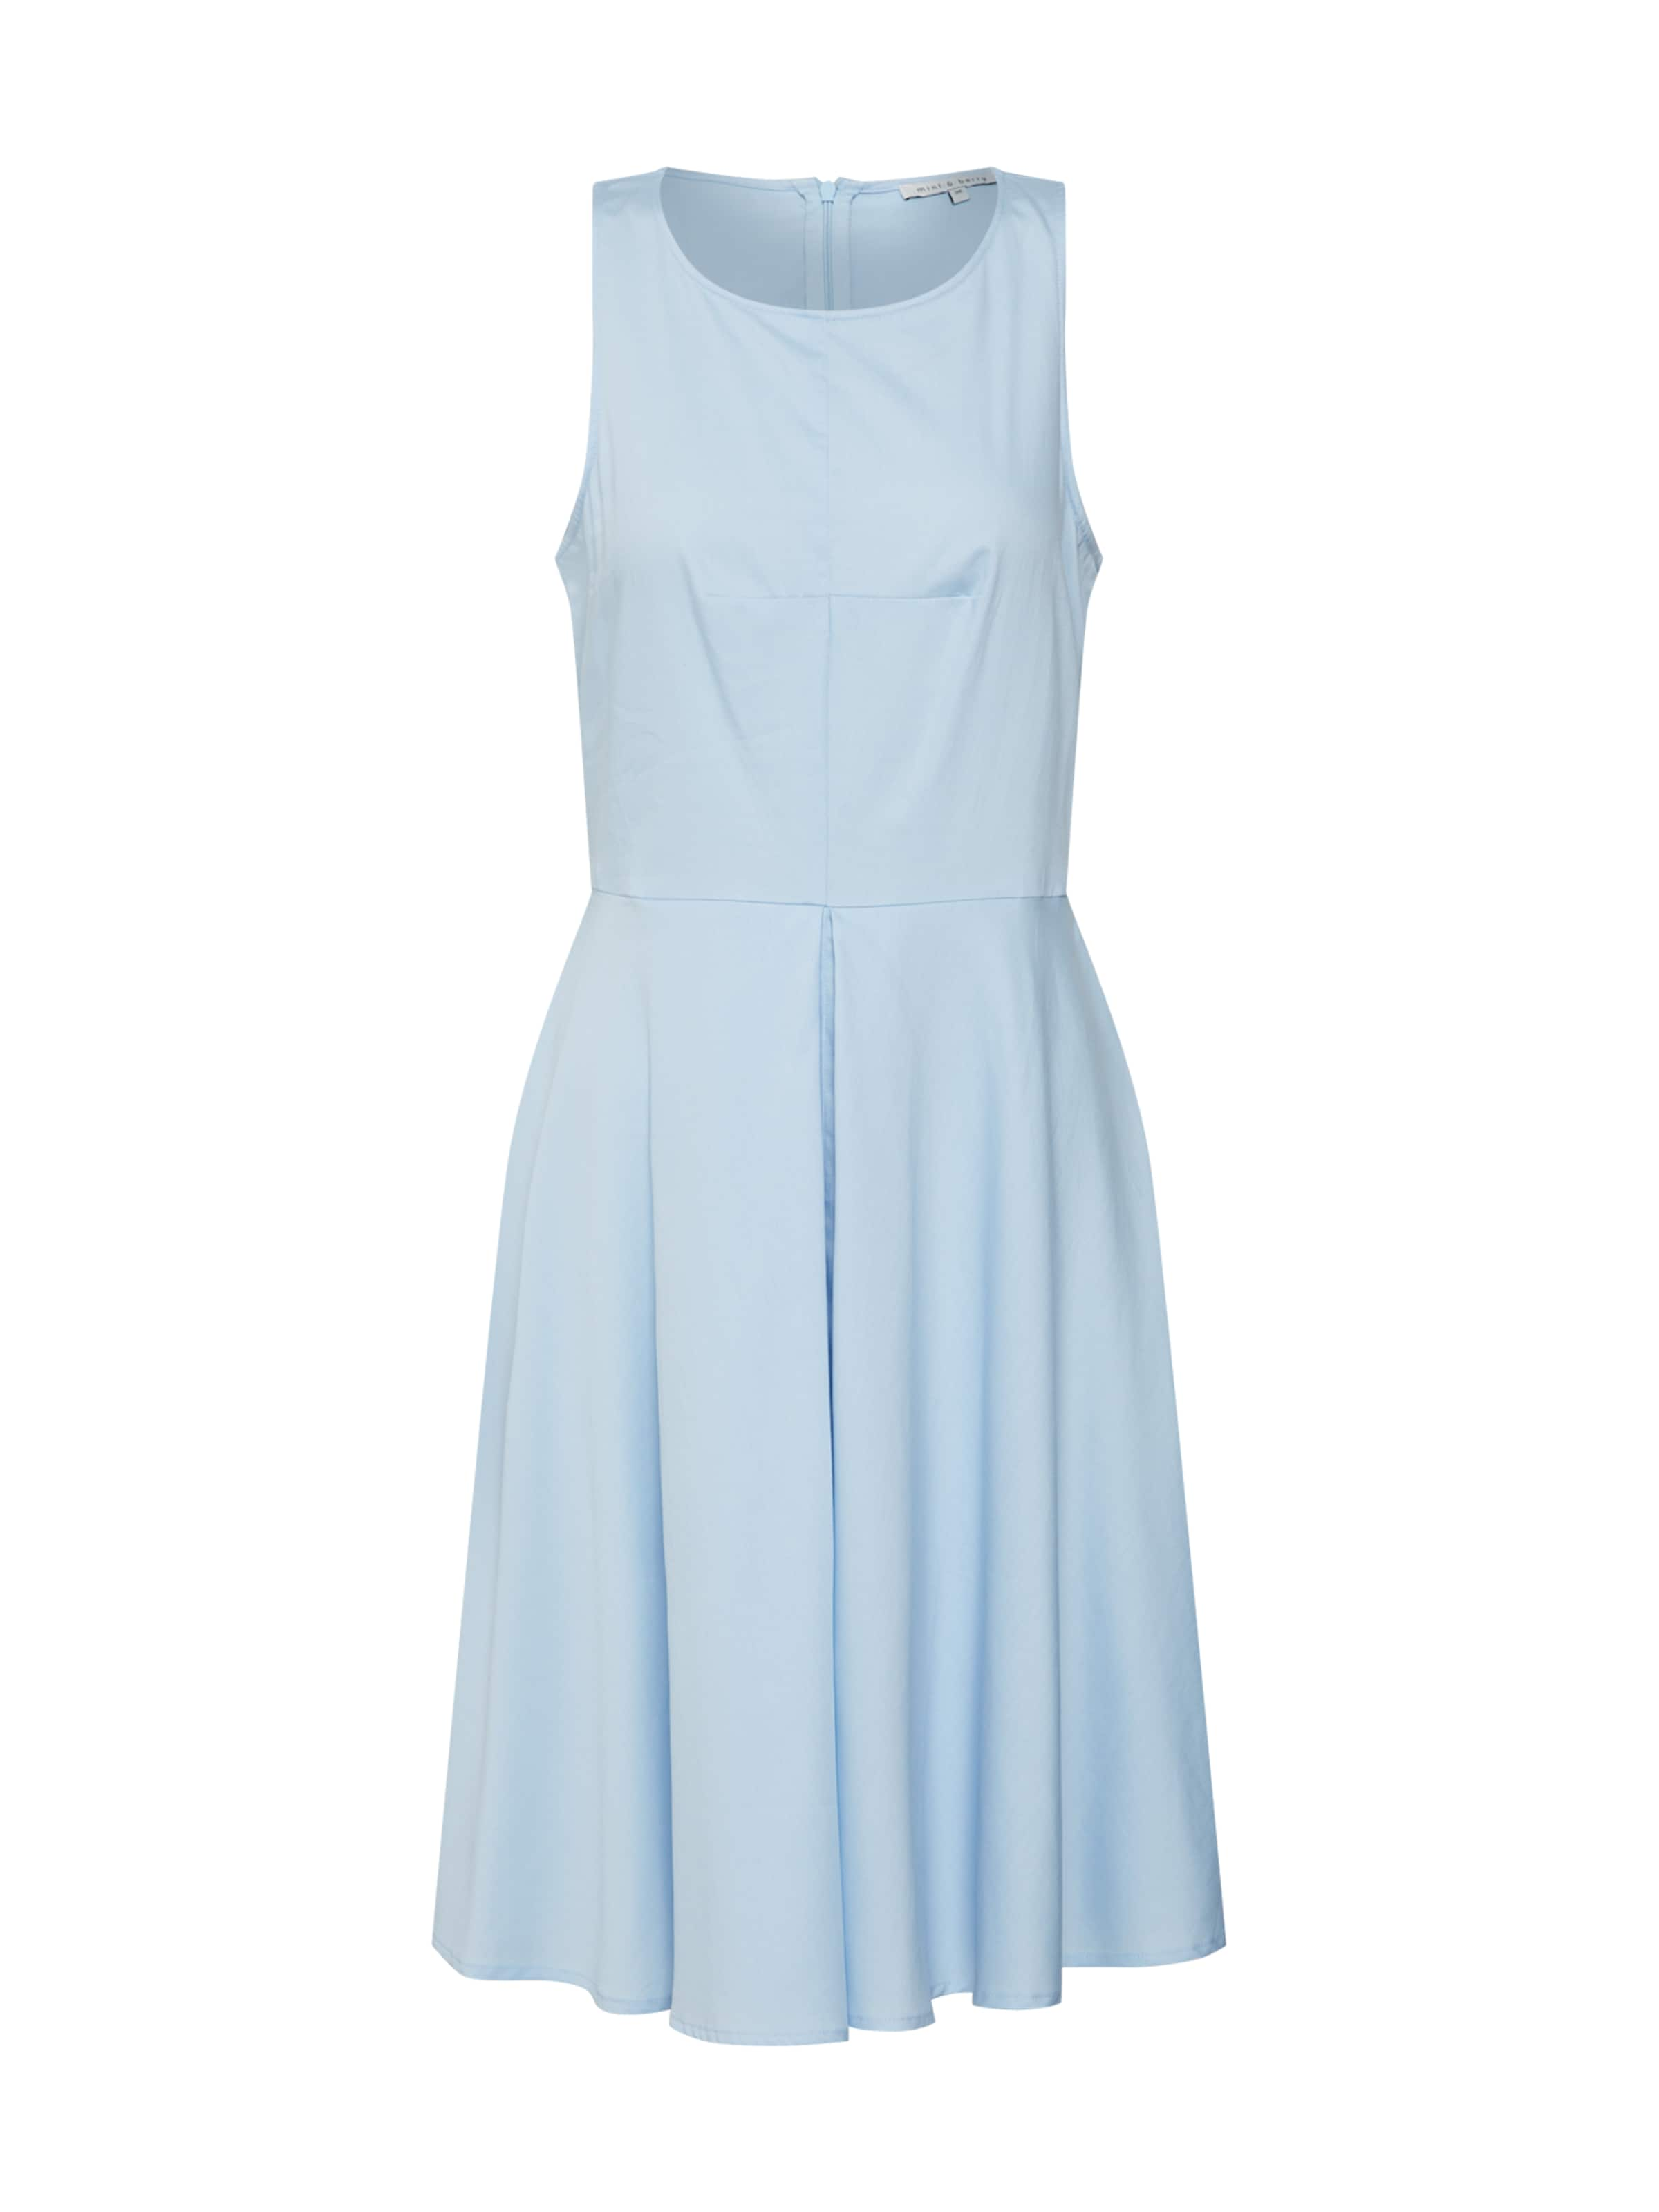 Hellblau amp;berry Mint Dress Kleid Flare In 'fitamp; WInverted Pleat' SMLUpGVqz